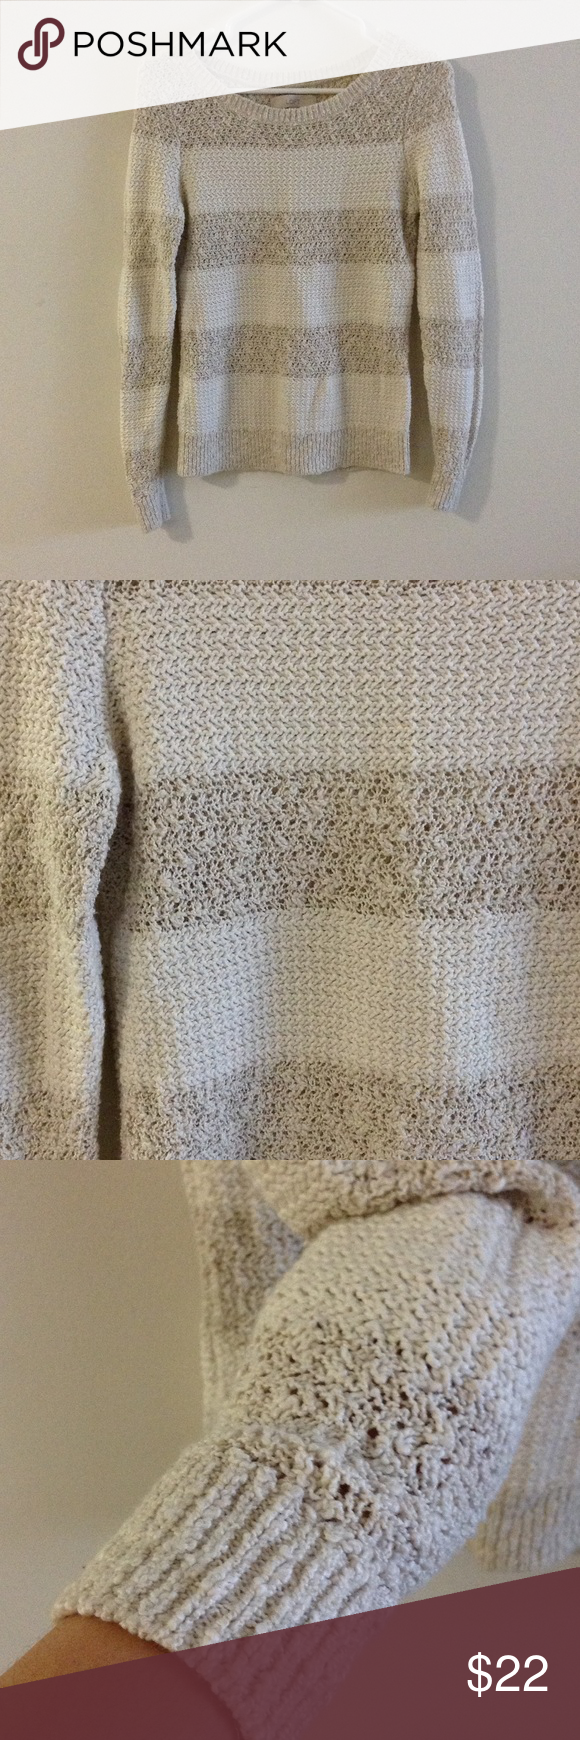 Striped Sweater Cream striped knitted sweater. LOFT Tops